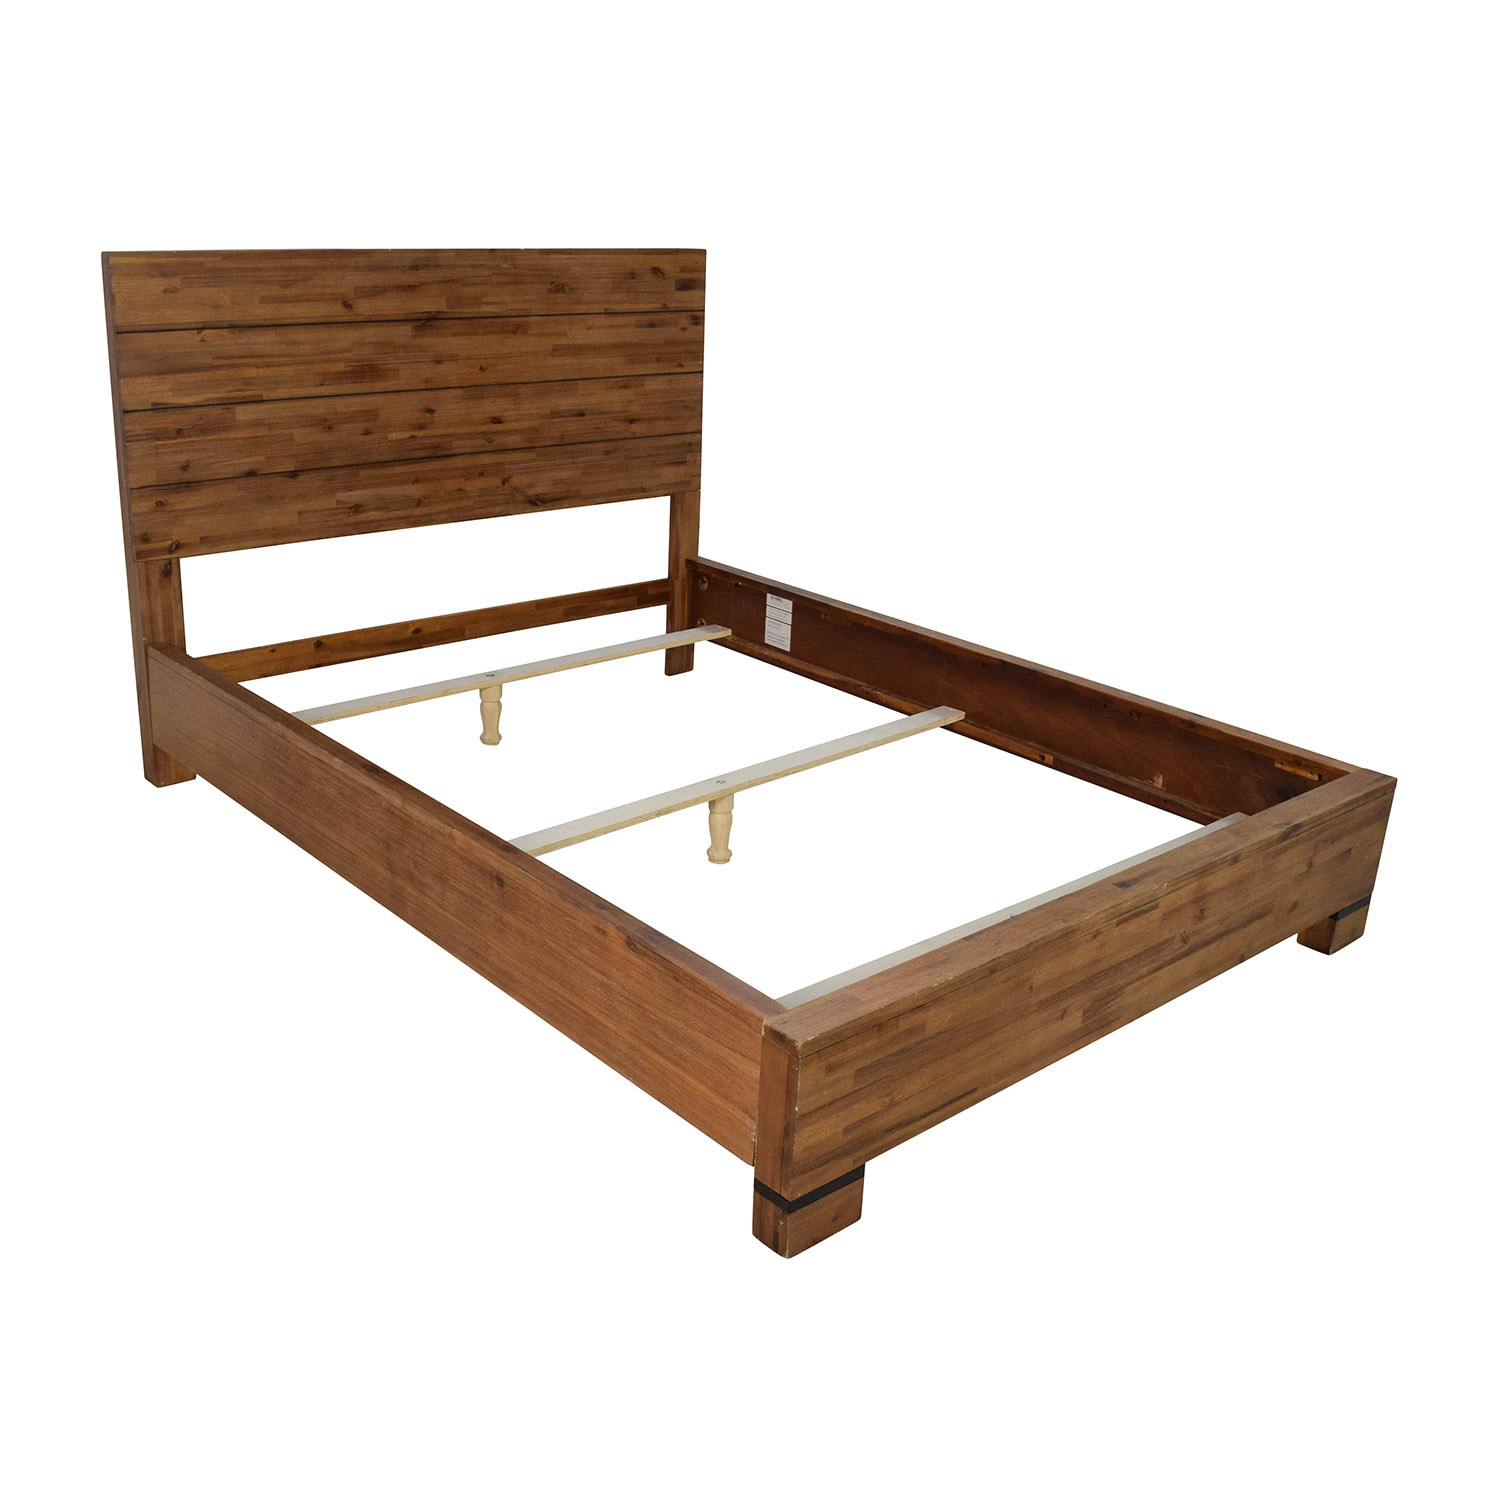 50 off macy s macy s chagne queen bed frame beds 10236 | sell macy s chagne queen bed frame